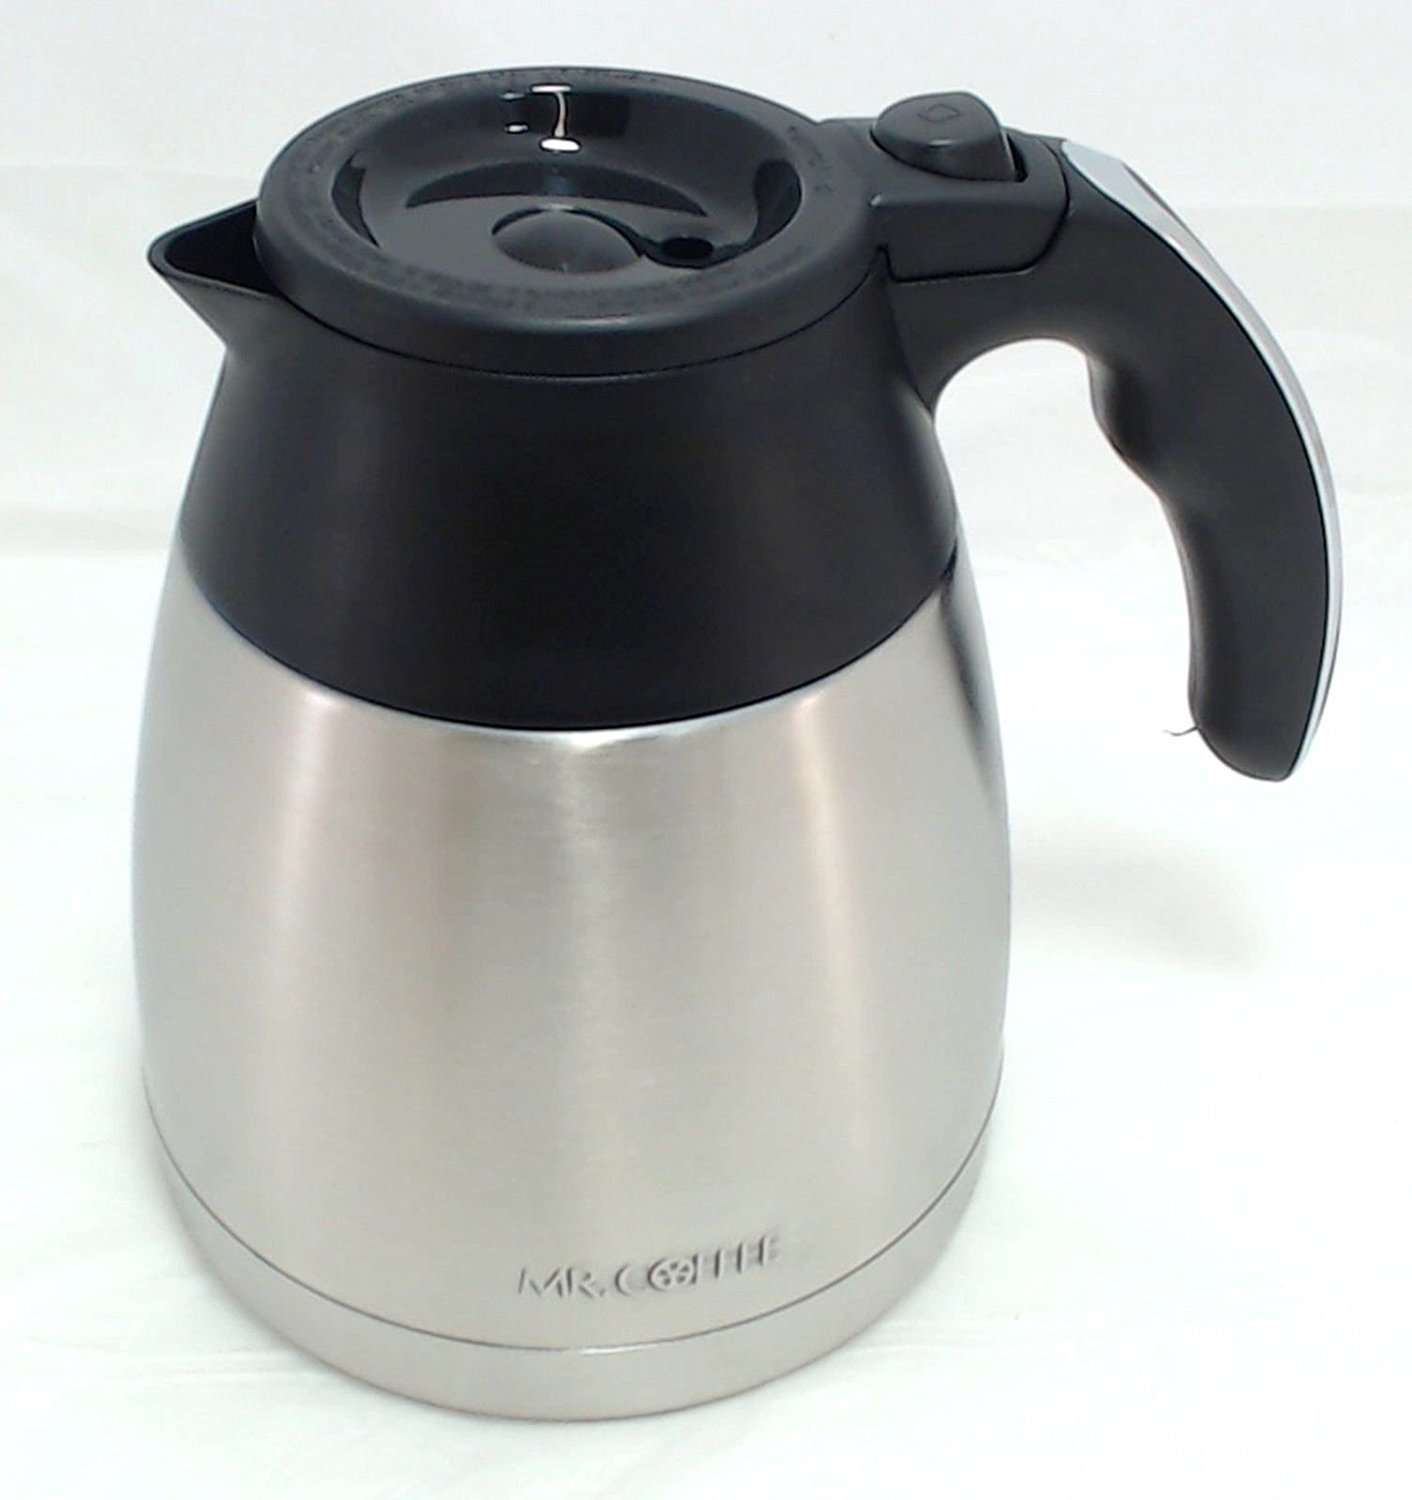 Mr. Coffee 137035-000-000 Thermal Carafe